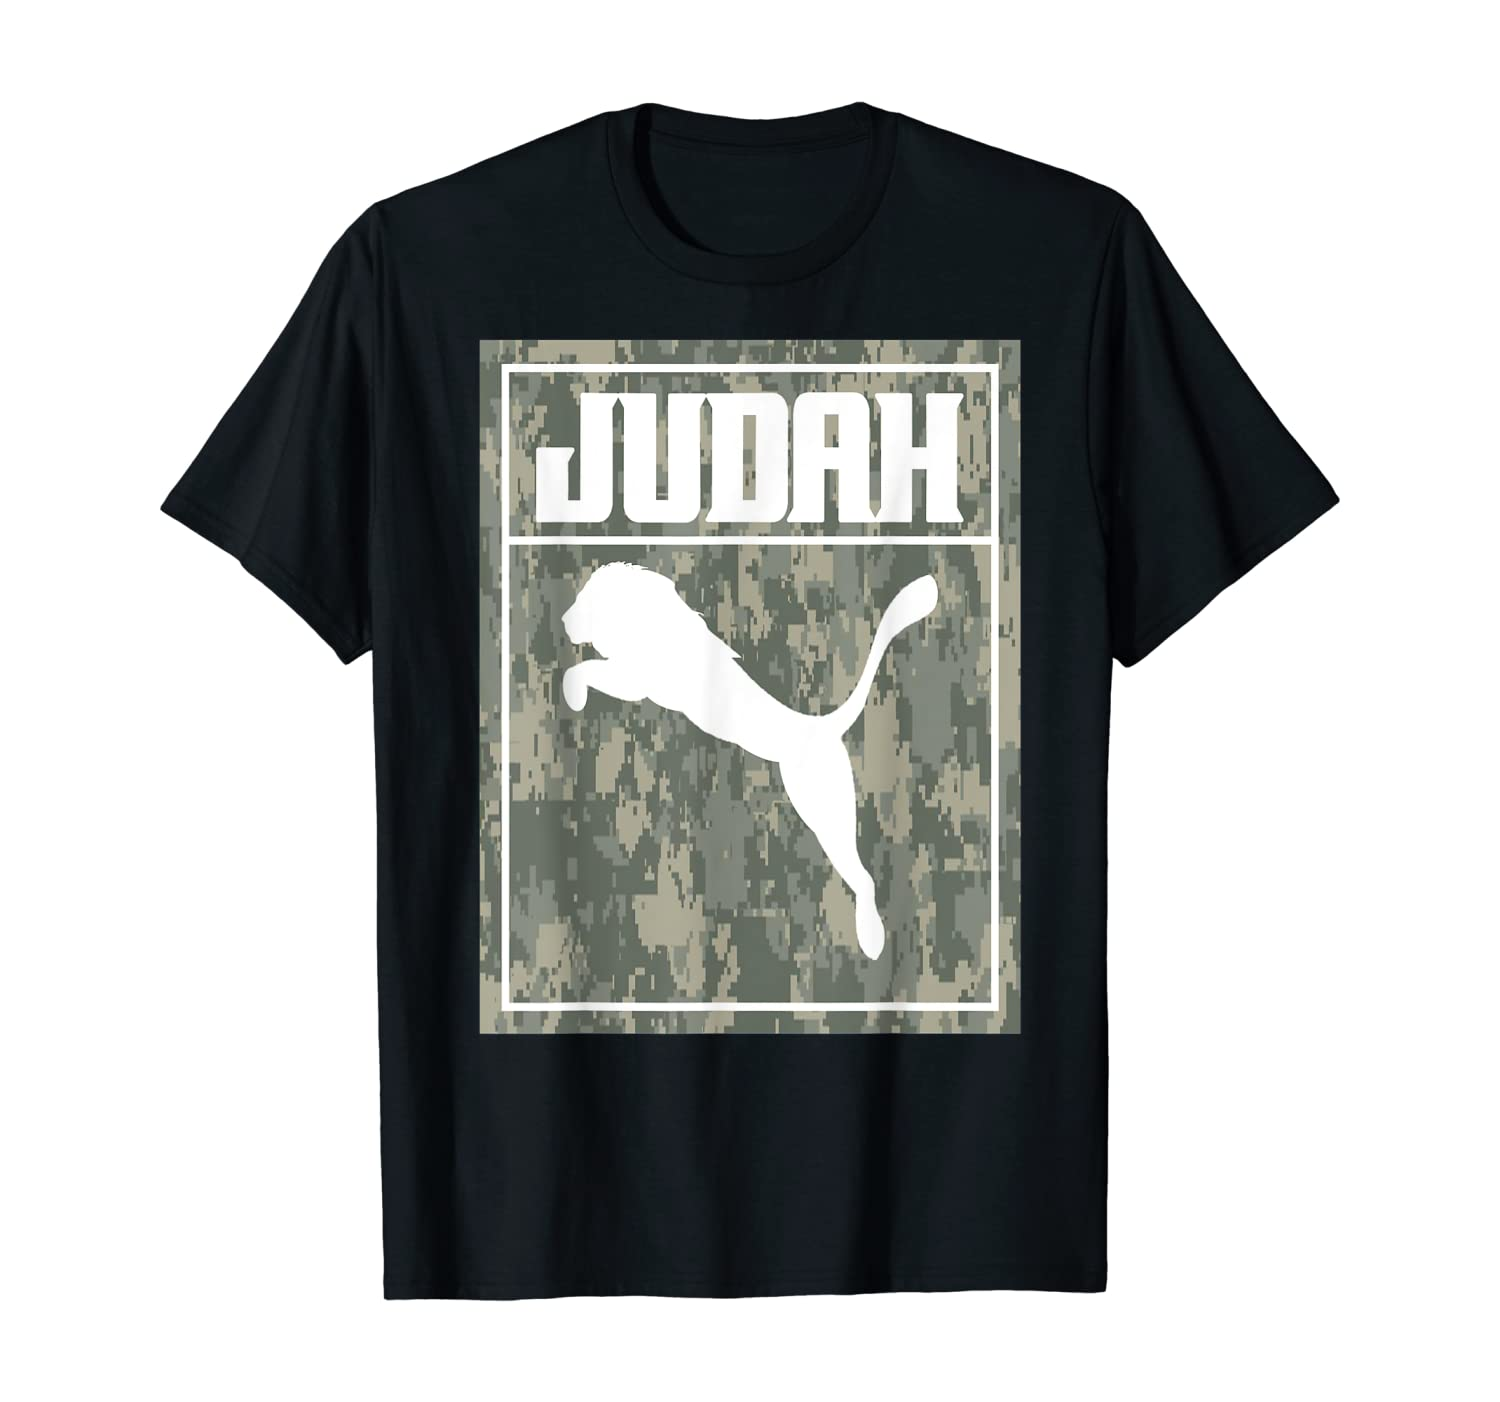 Hebrew Israelite Lion of Judah T-Shirt